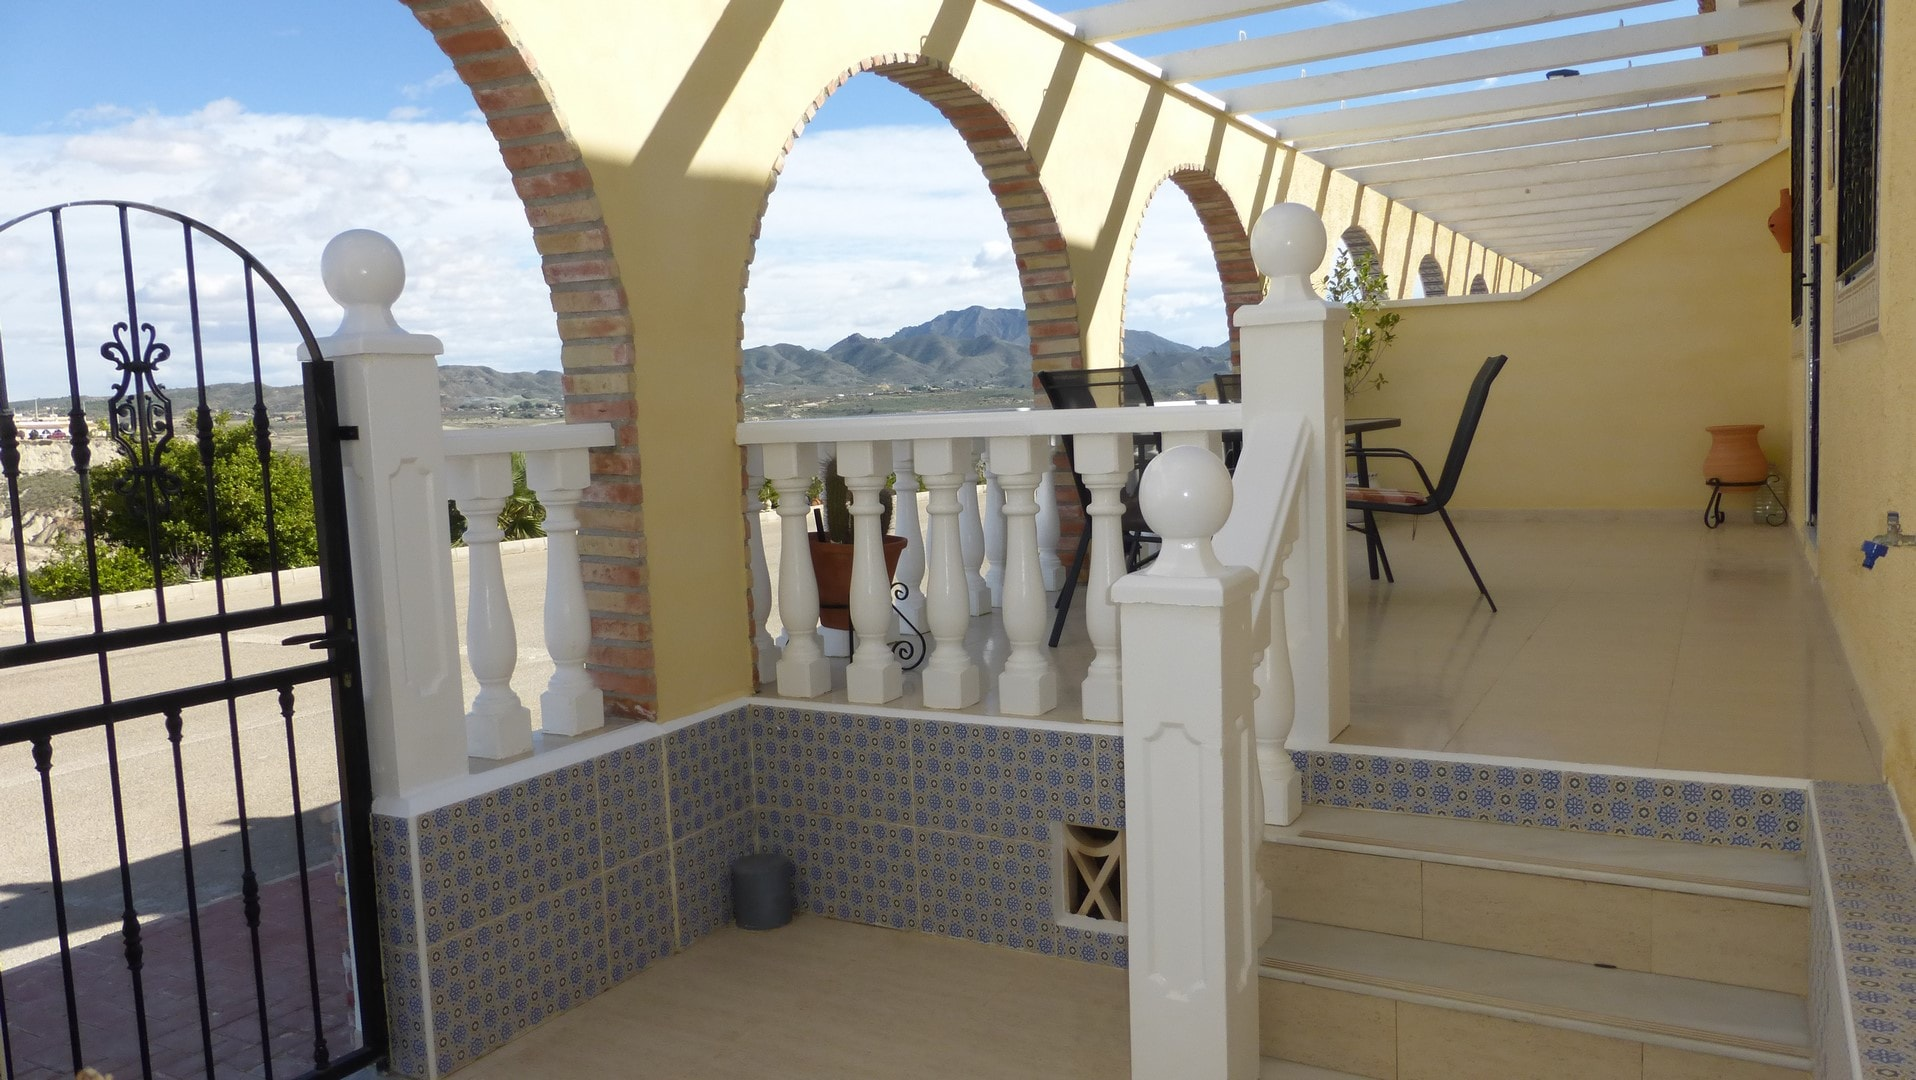 RED223 2 Bedroom Terraced Property For Sale Camposol